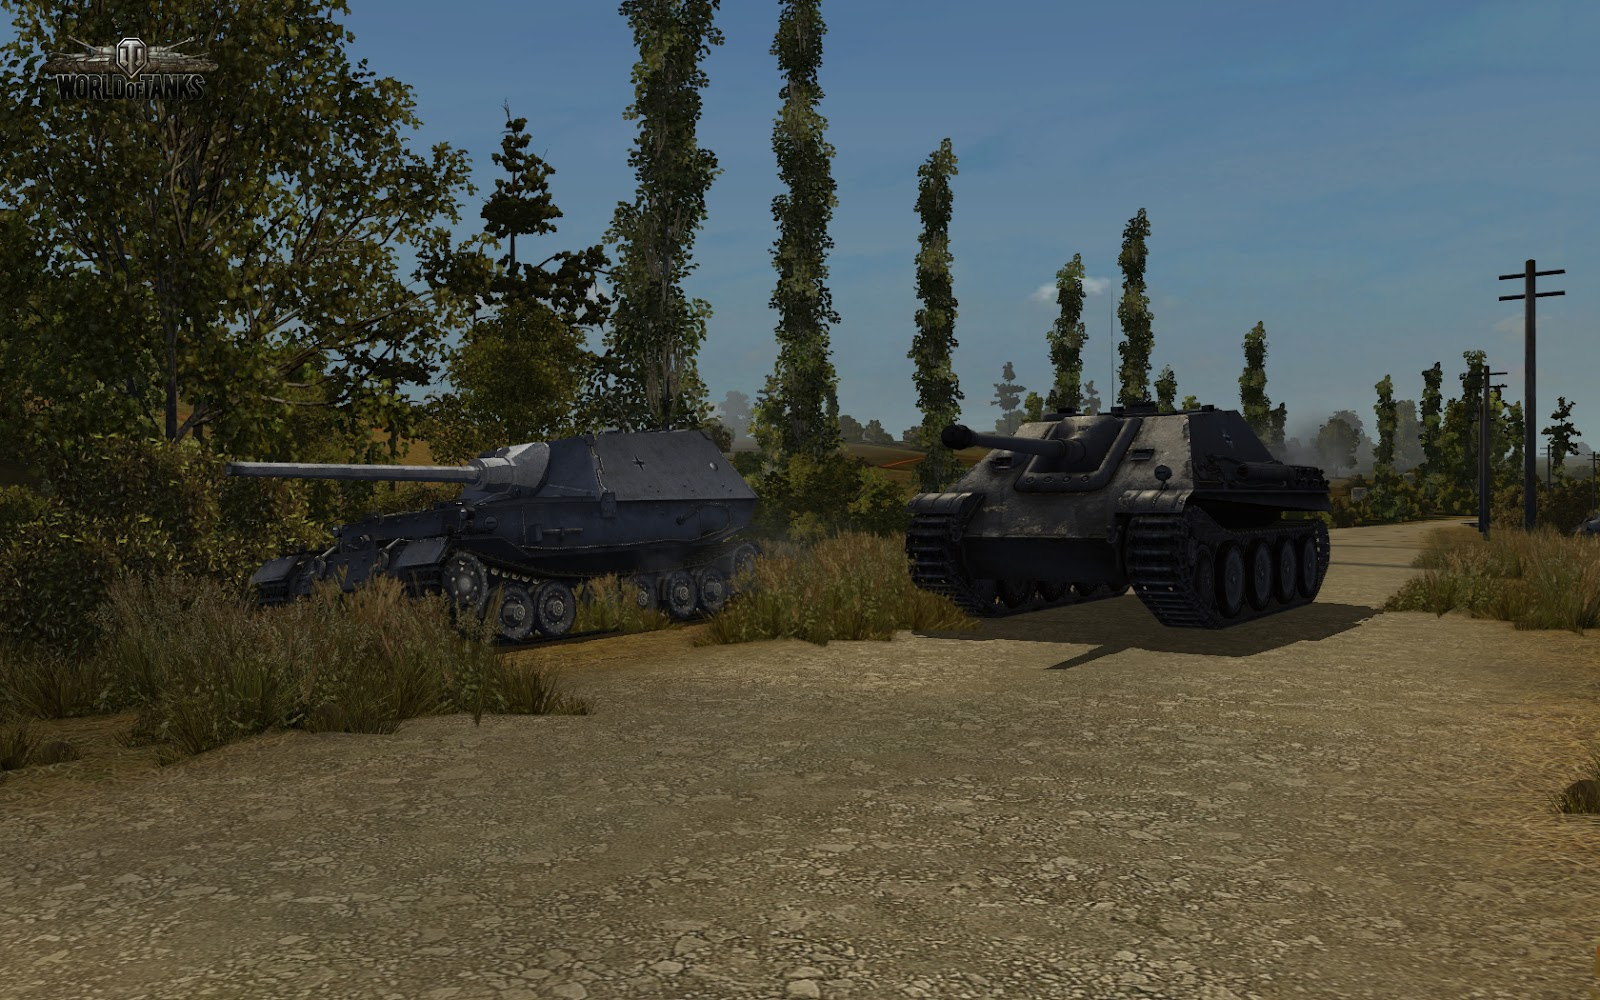 http://3.bp.blogspot.com/-RMkY-ruSzHo/T64eEMN4eOI/AAAAAAAAAPI/oWKro4vA4jU/s1600/world-of-tanks-mmo-wallpaper.jpg